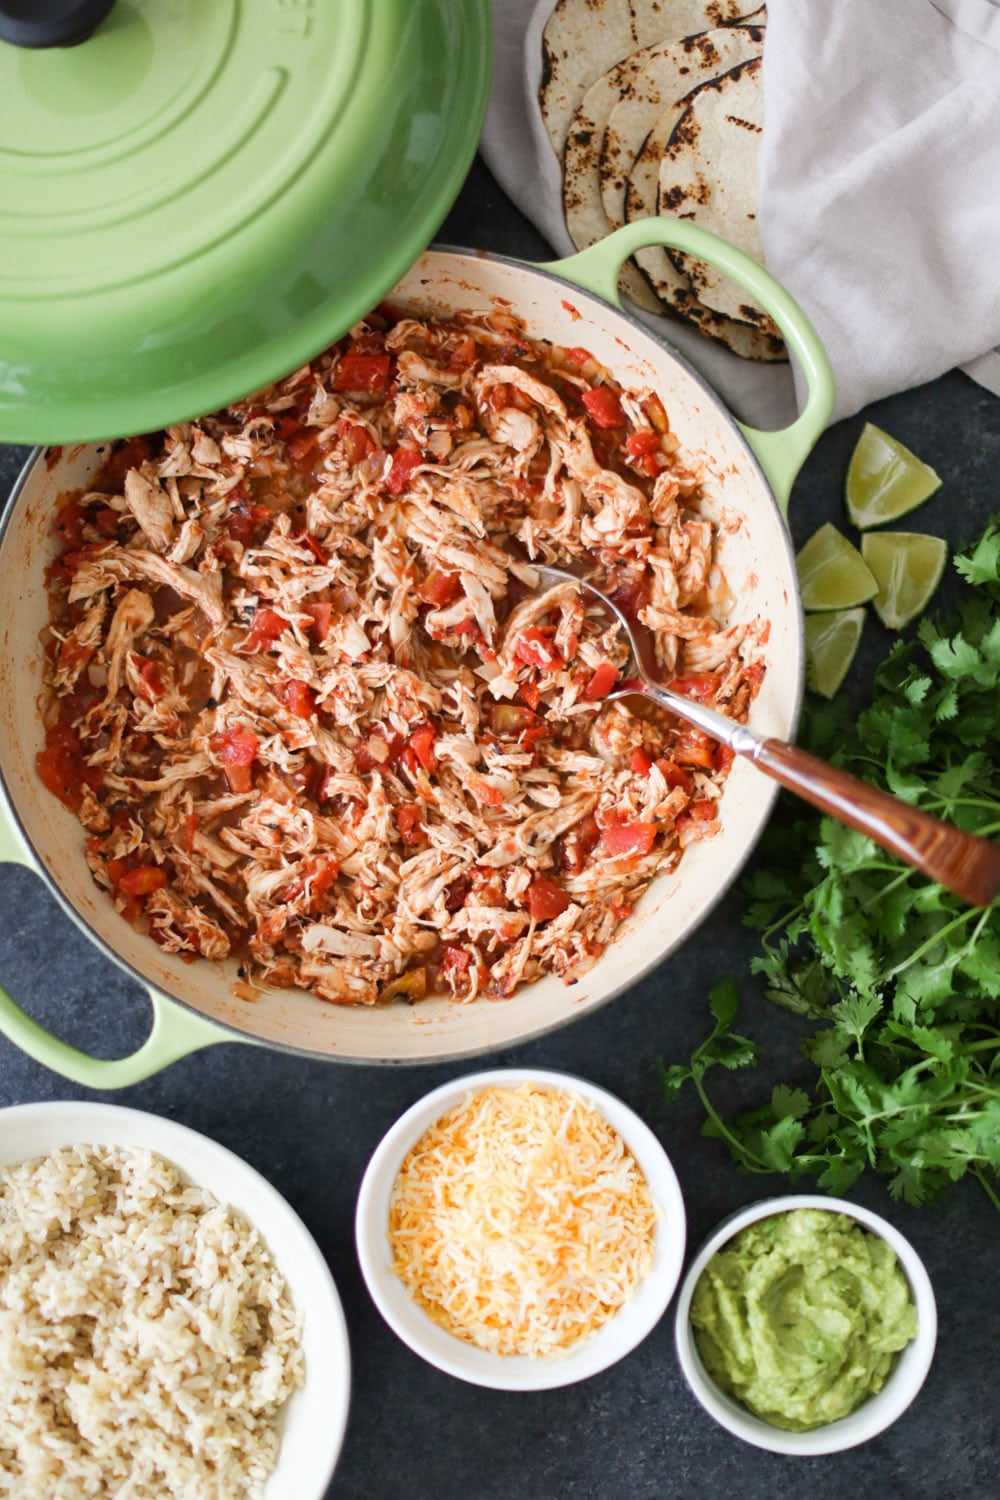 Healthy Pantry Recipes- Easy Chipotle Shredded Chicken